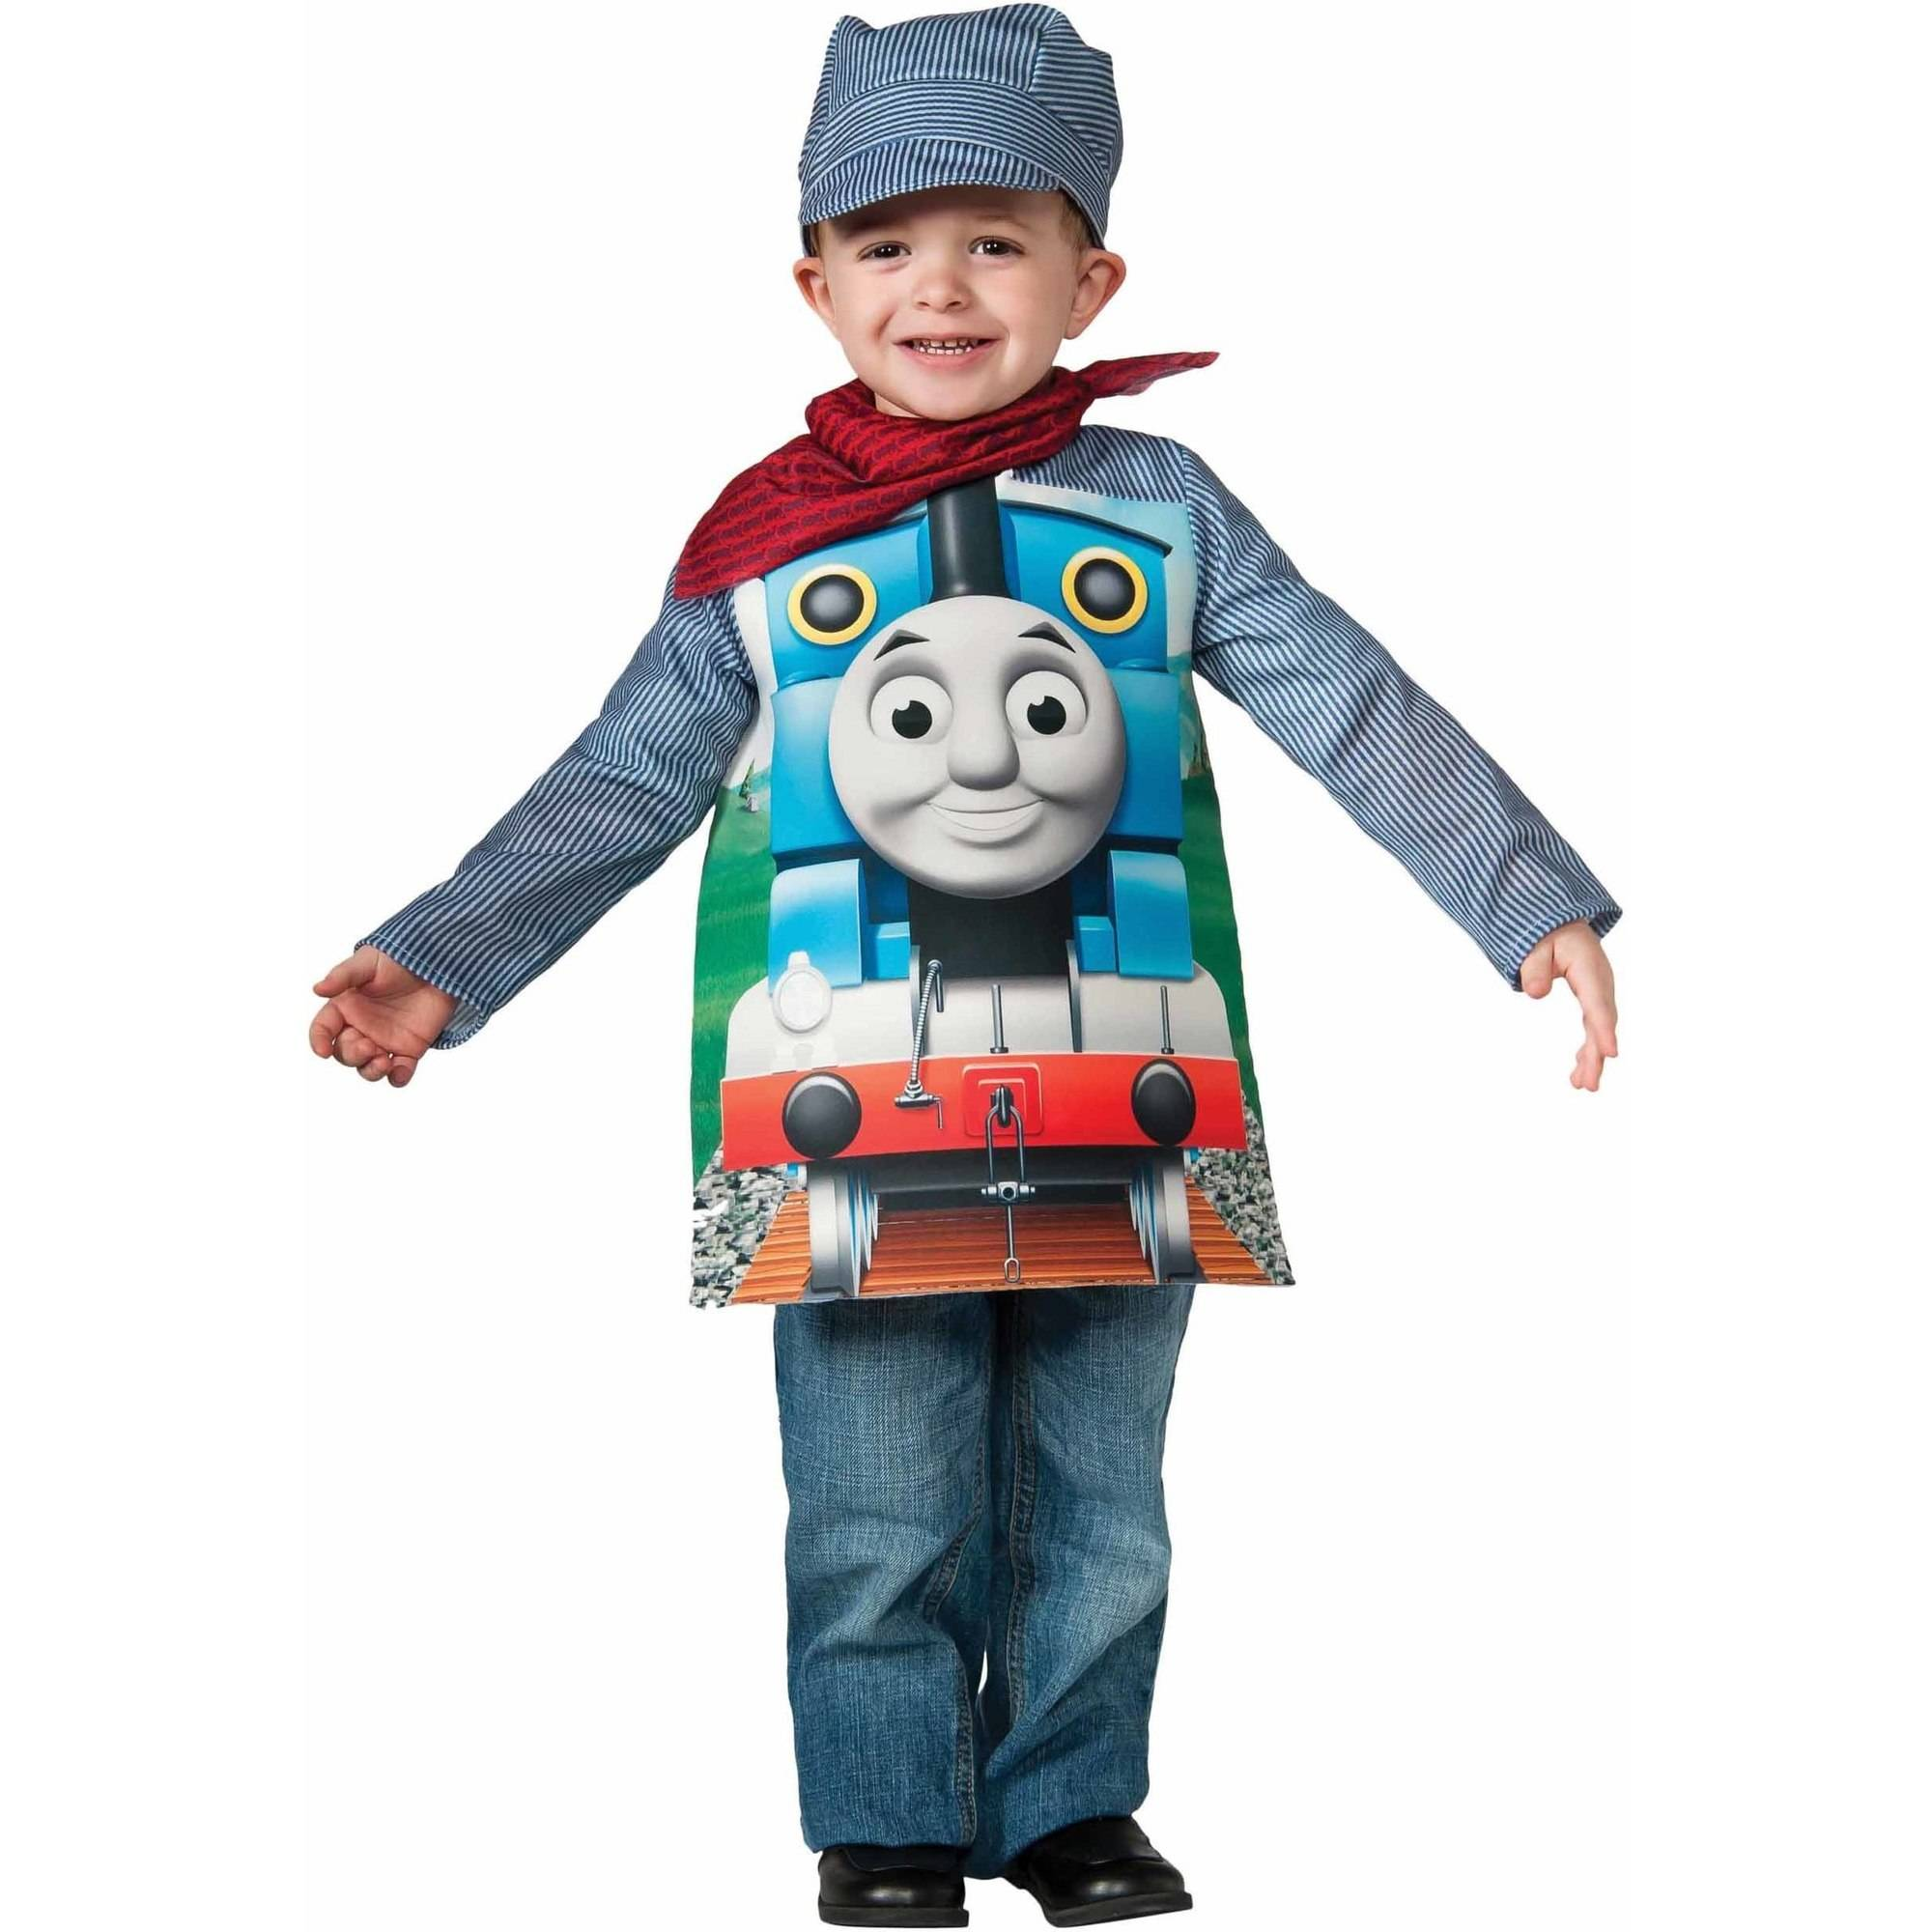 Rubies Thomas the Tank Engine Toddler's Costume, 3T-4T